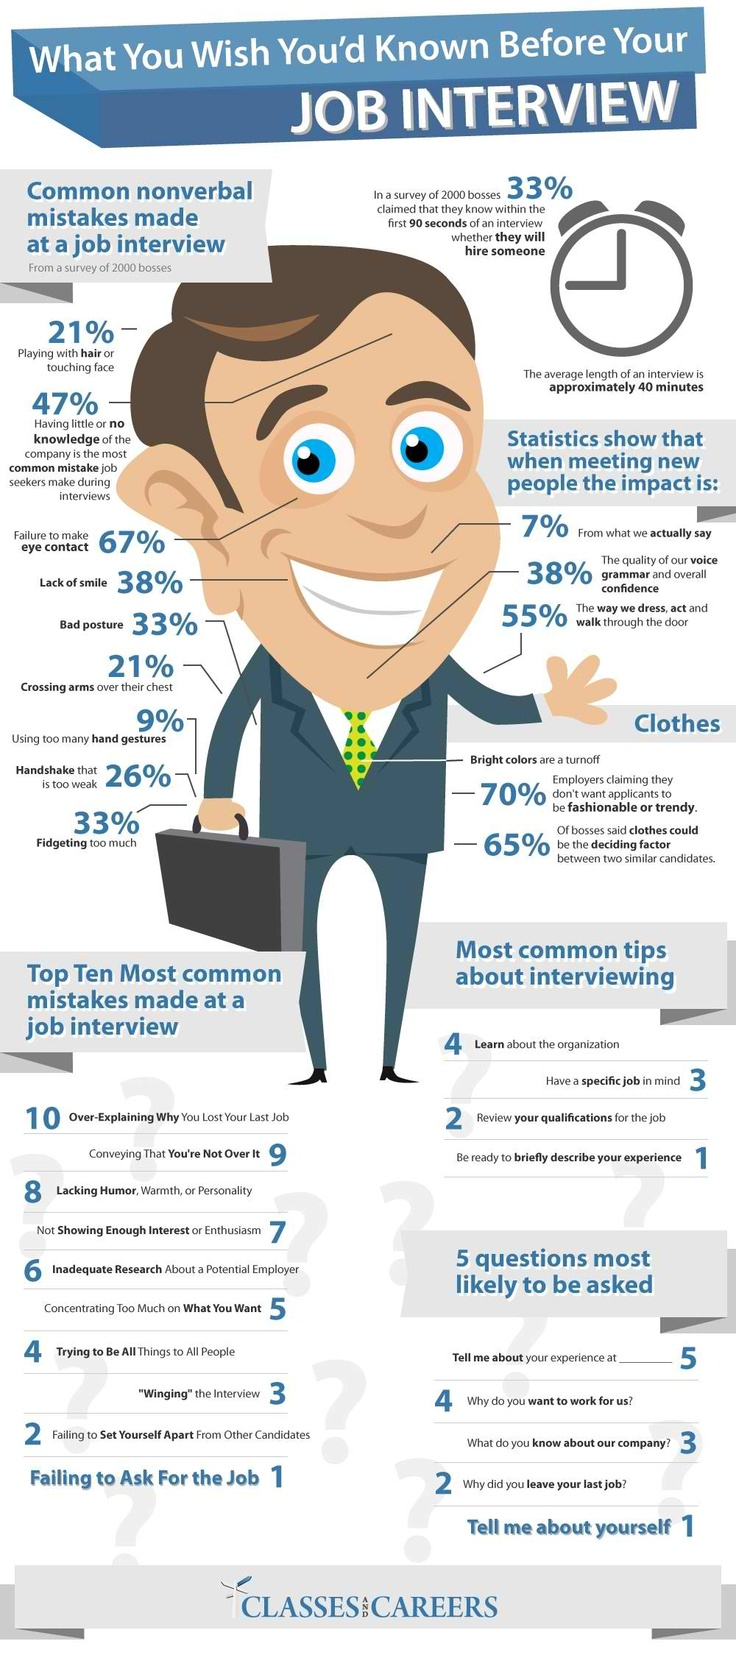 Captivating This Infographic Gives You All The Tips And Tricks Needed To Avoid The  Common Mistakes And Ace Your Interview! Careers Career Jobs Job Interviews  Tip Tips